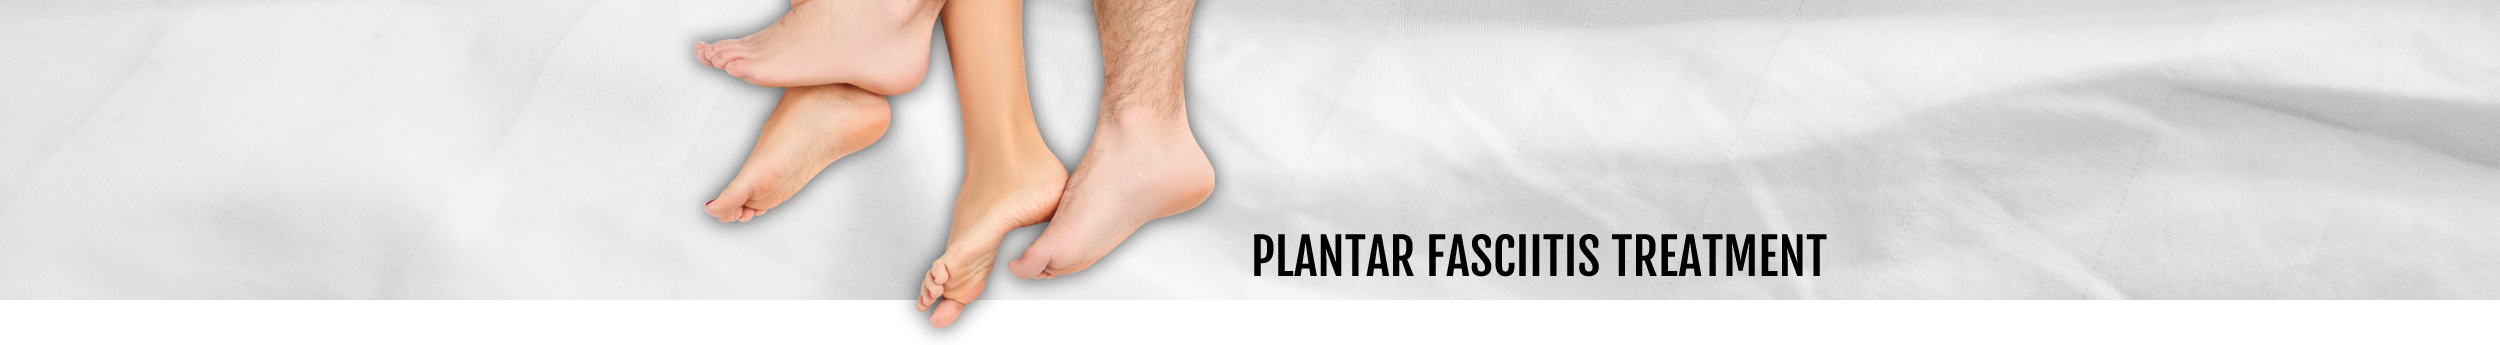 Plantar Fasciitis treatment header for the Walk IN Foot Clinic in central London